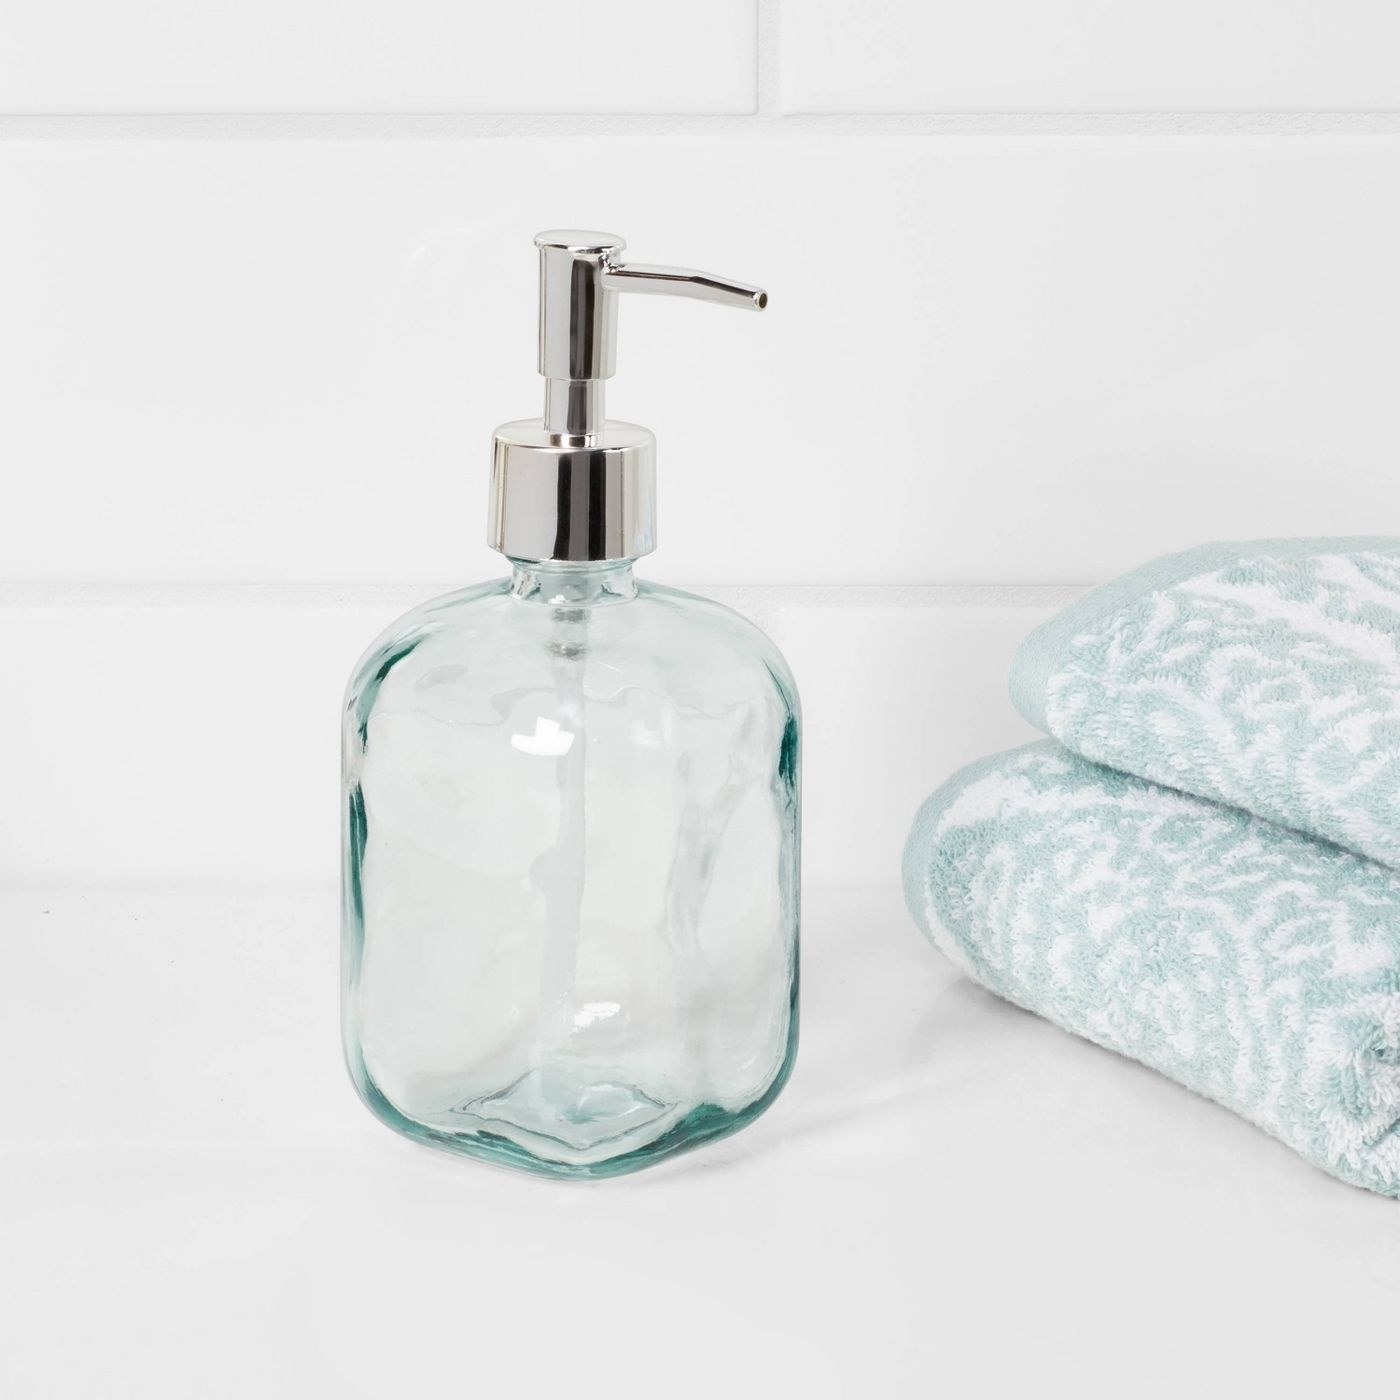 clear rounded rectangular glass soap dispenser with silver pump